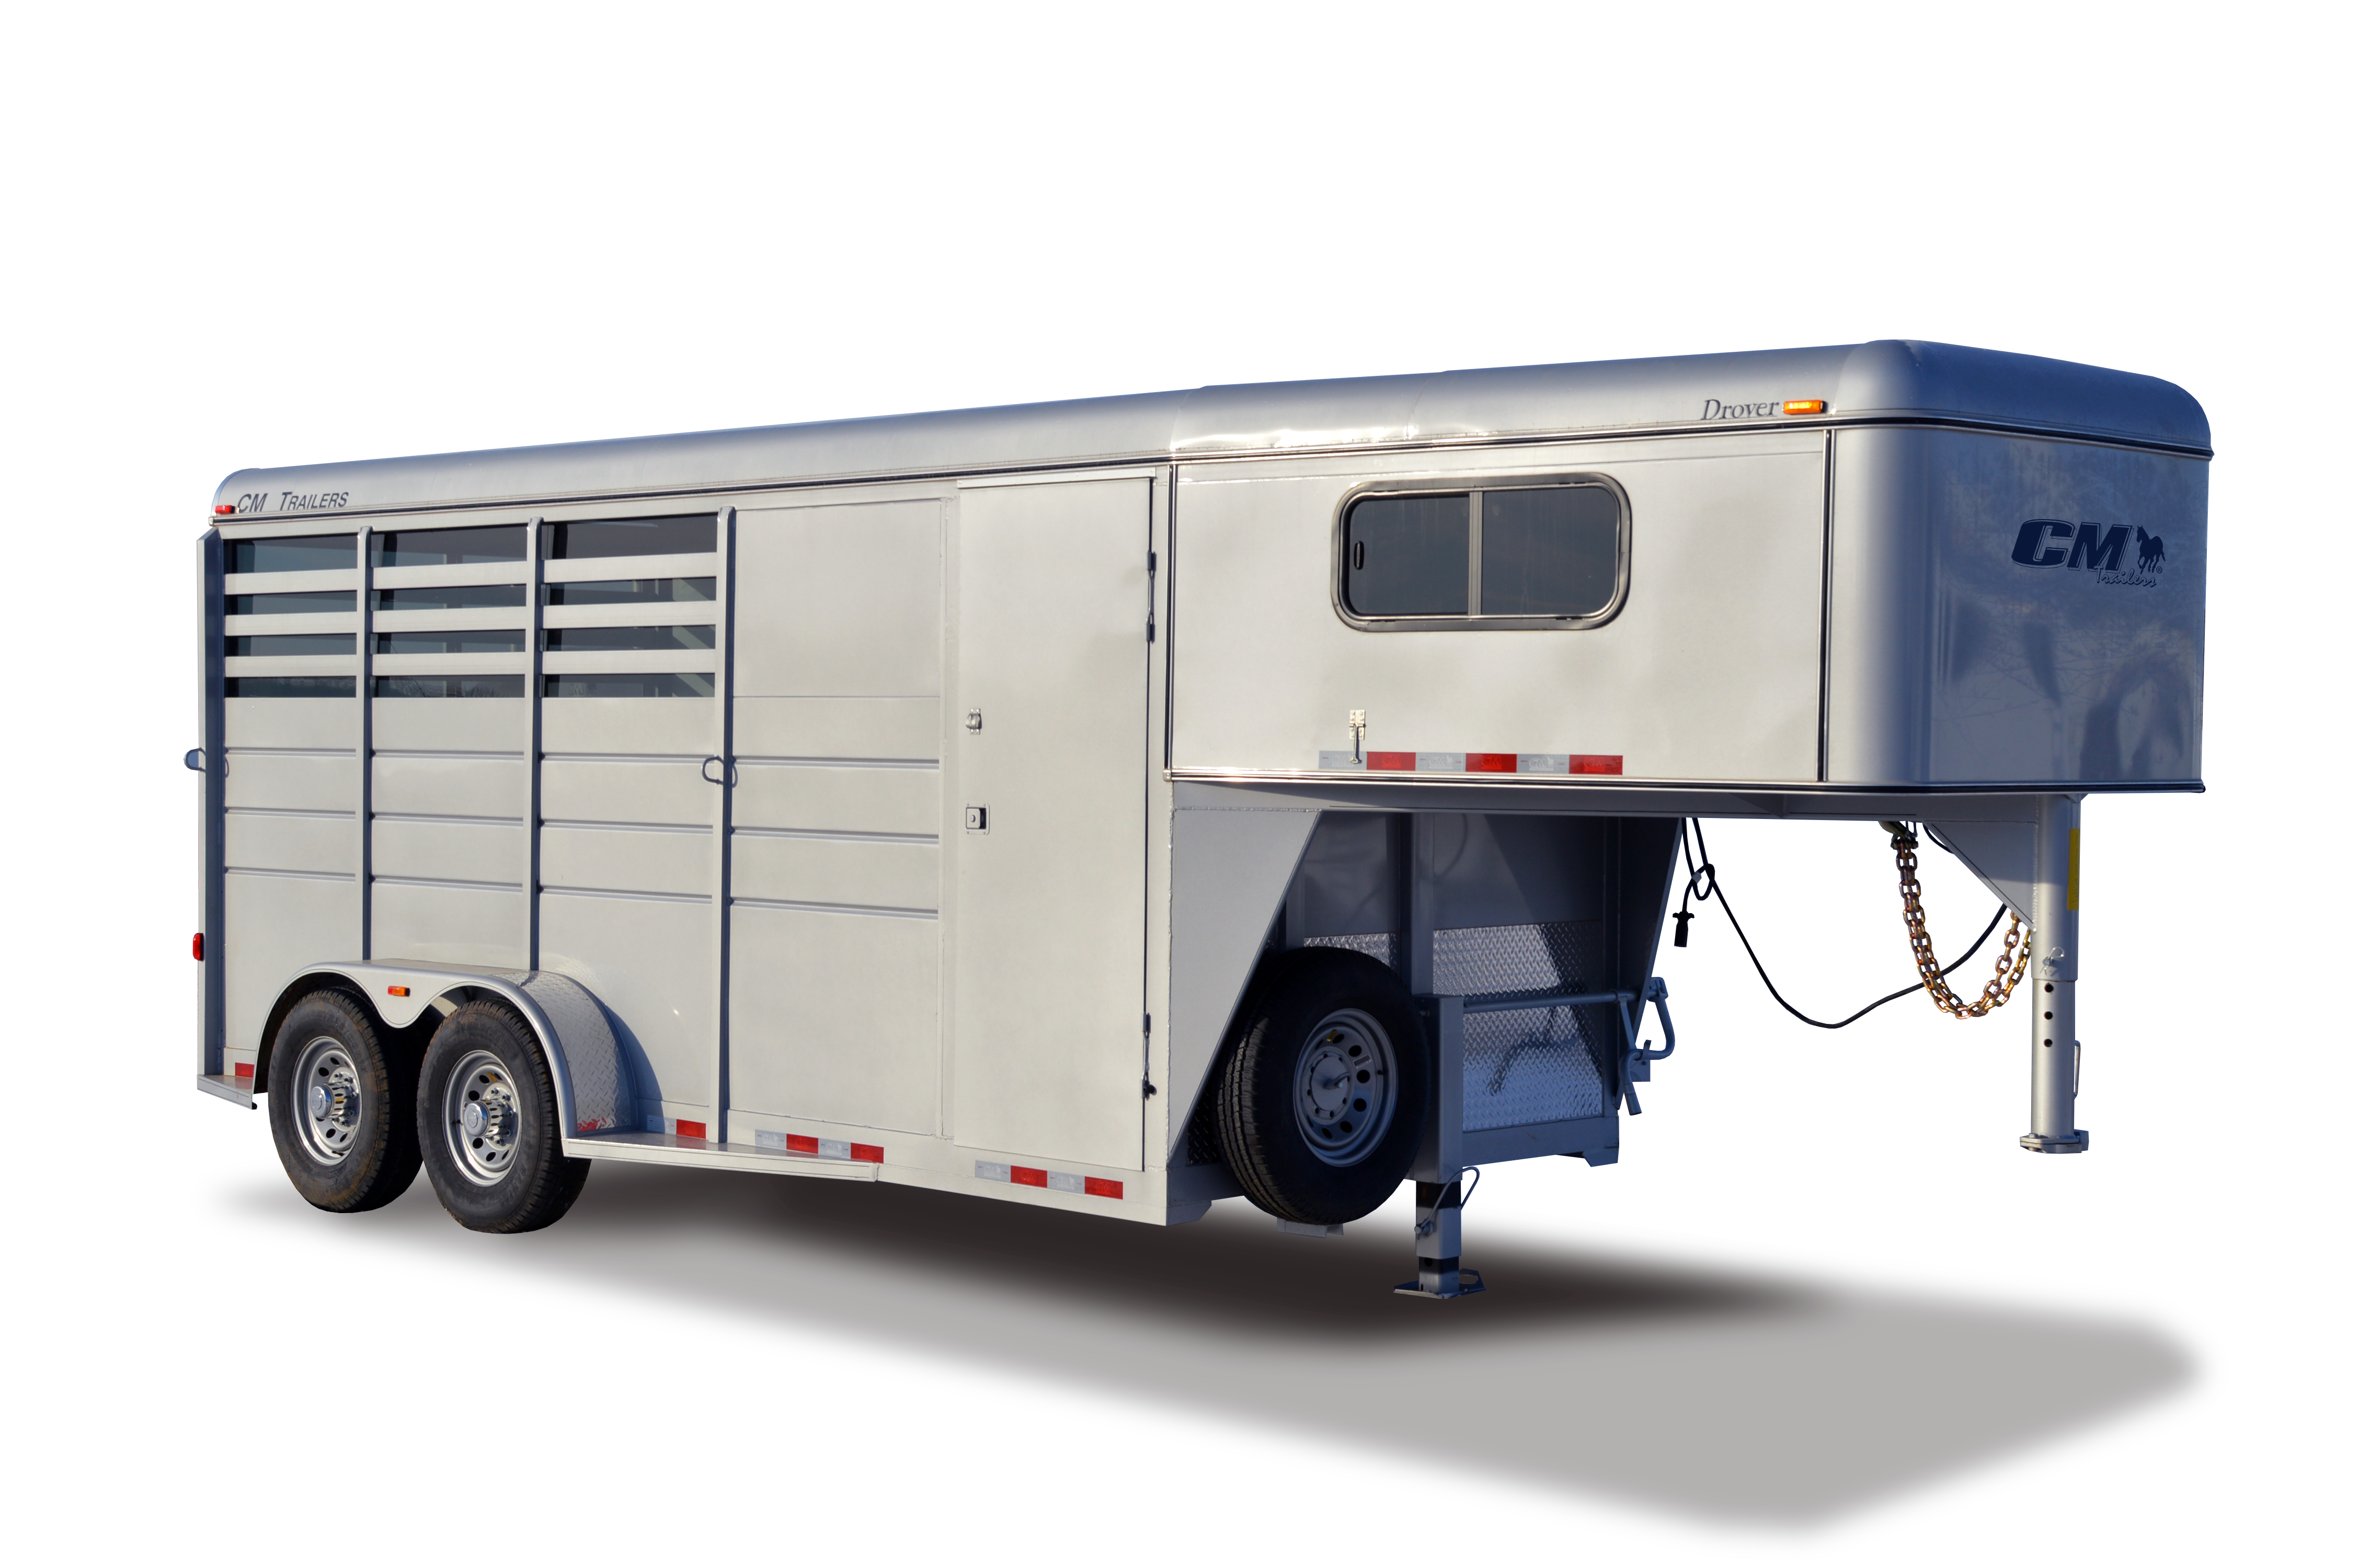 DROVER - CM Trailers